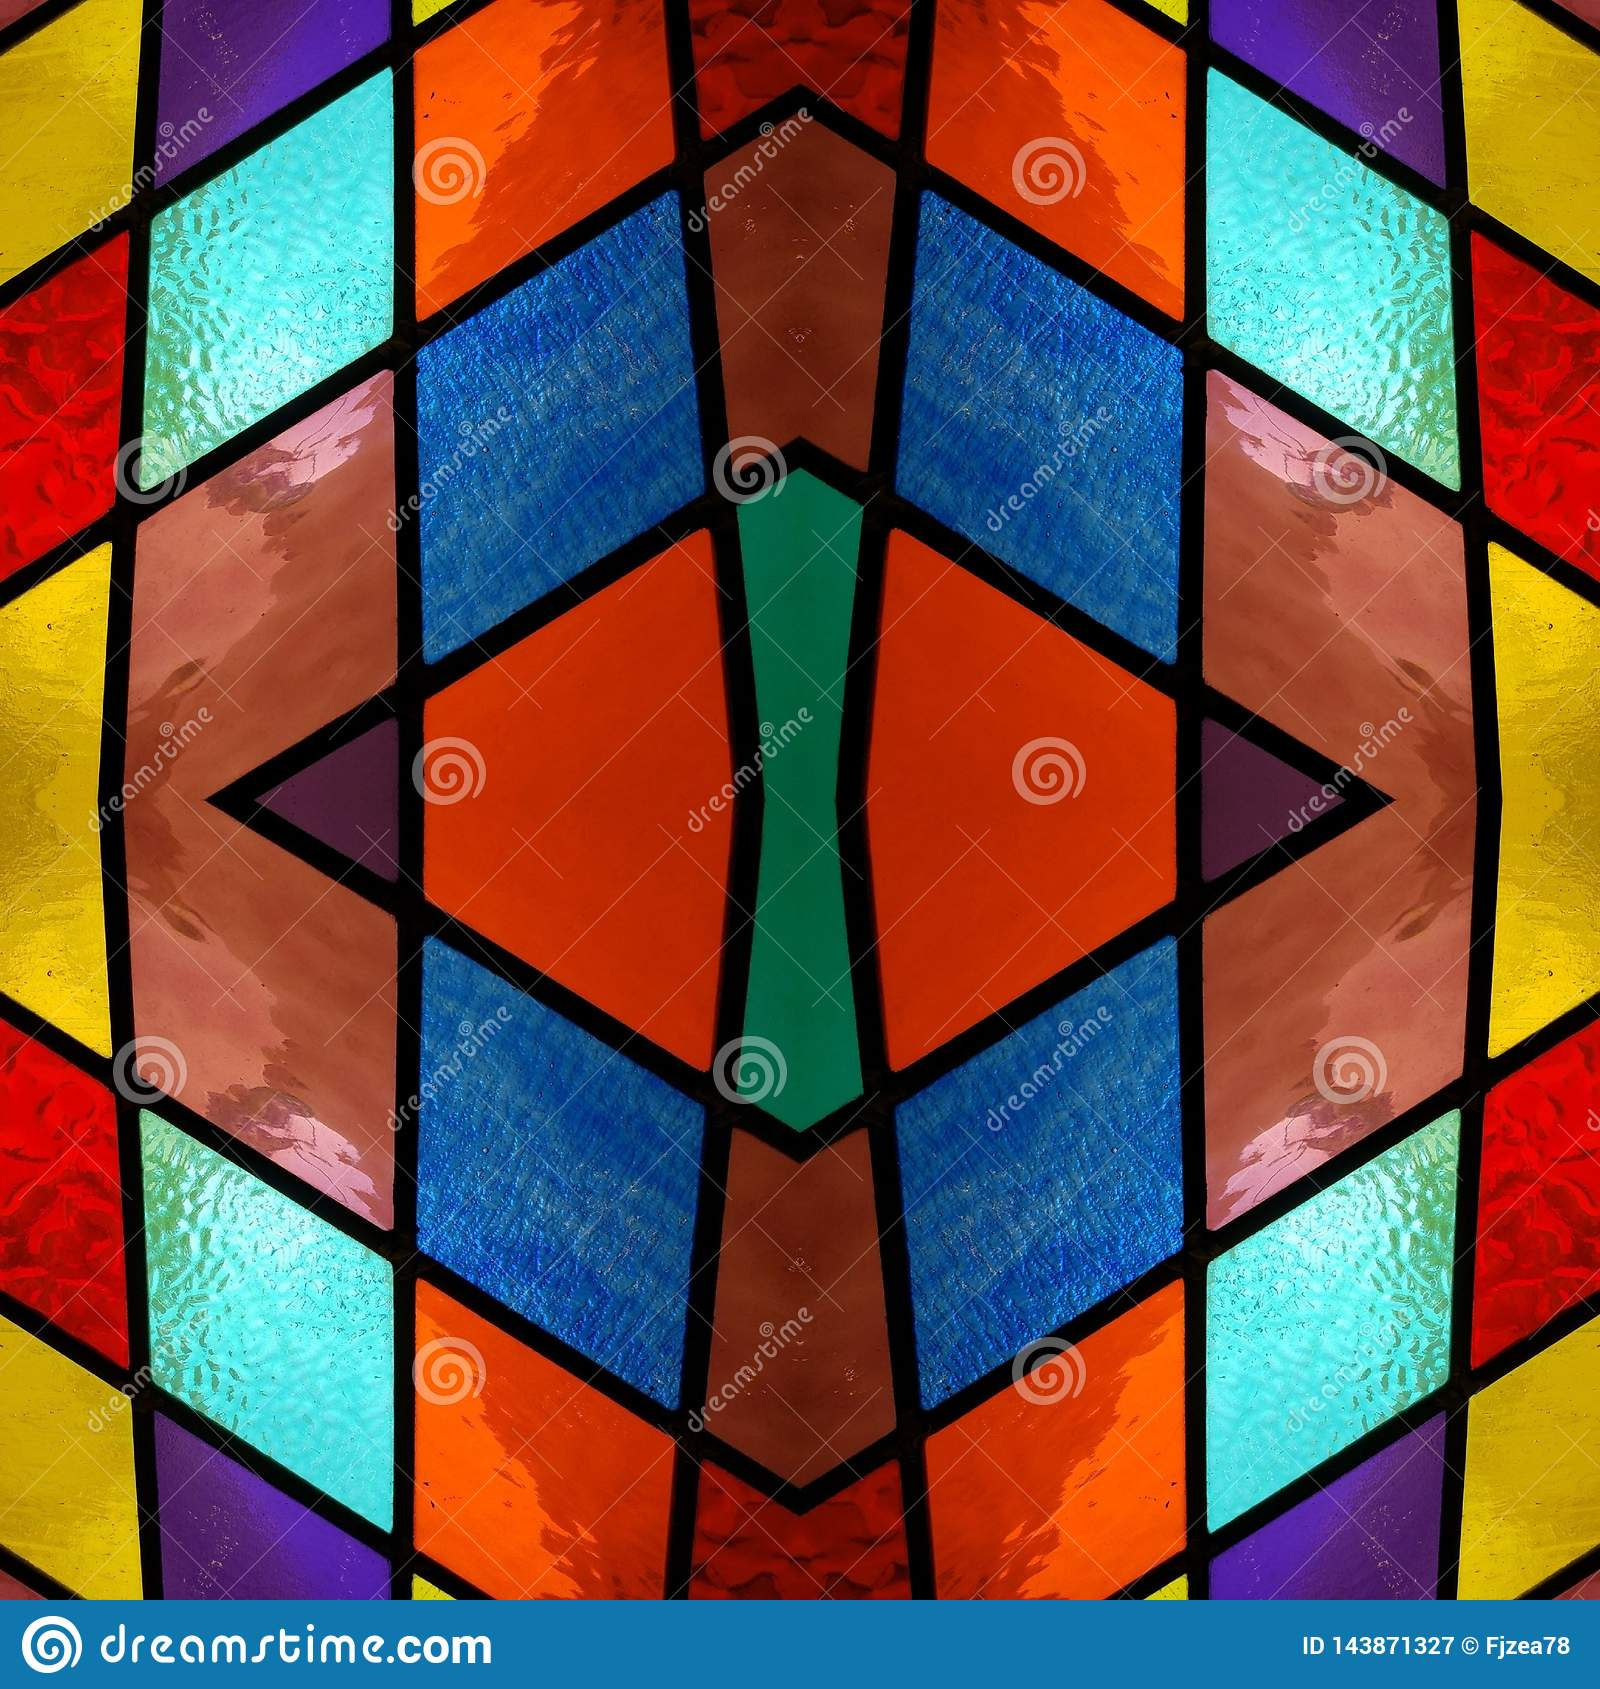 Abstract Design With Stained Glass In Various Colors